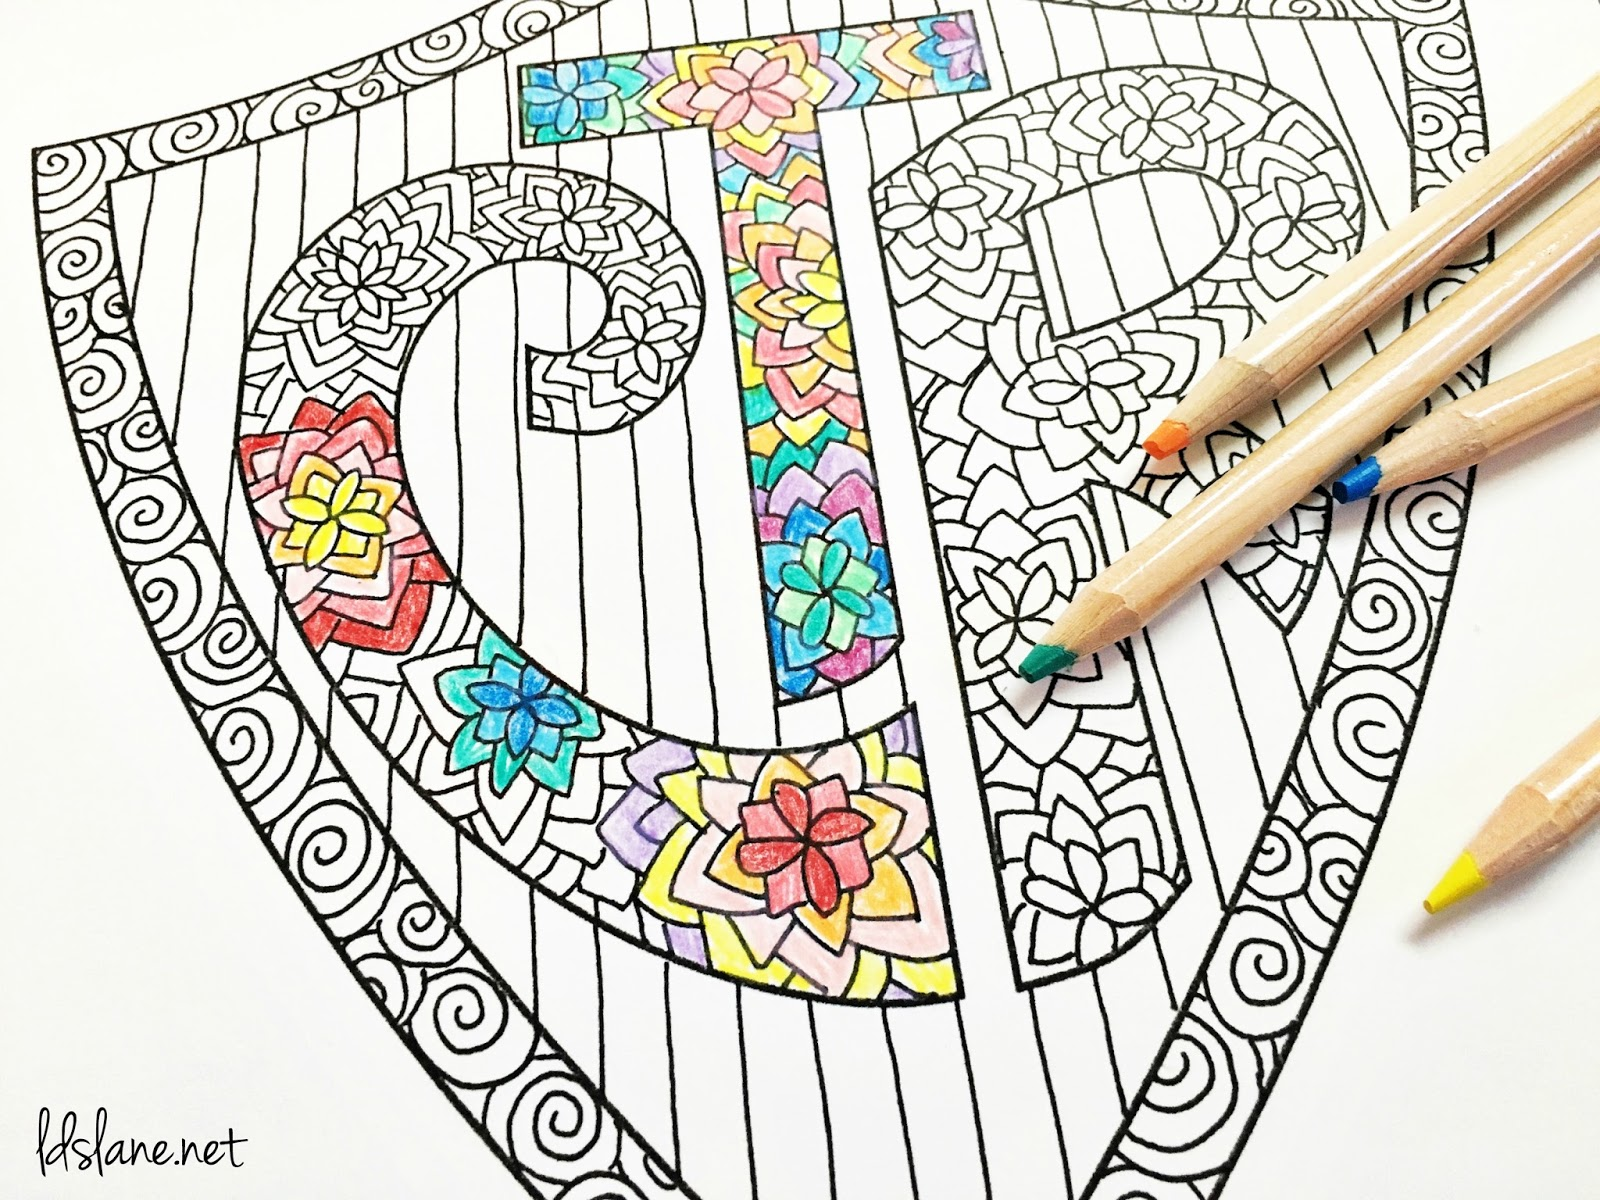 articles of faith coloring ctr shield wonder woman images image alligator colored pencil coloring pages Faith Coloring Page